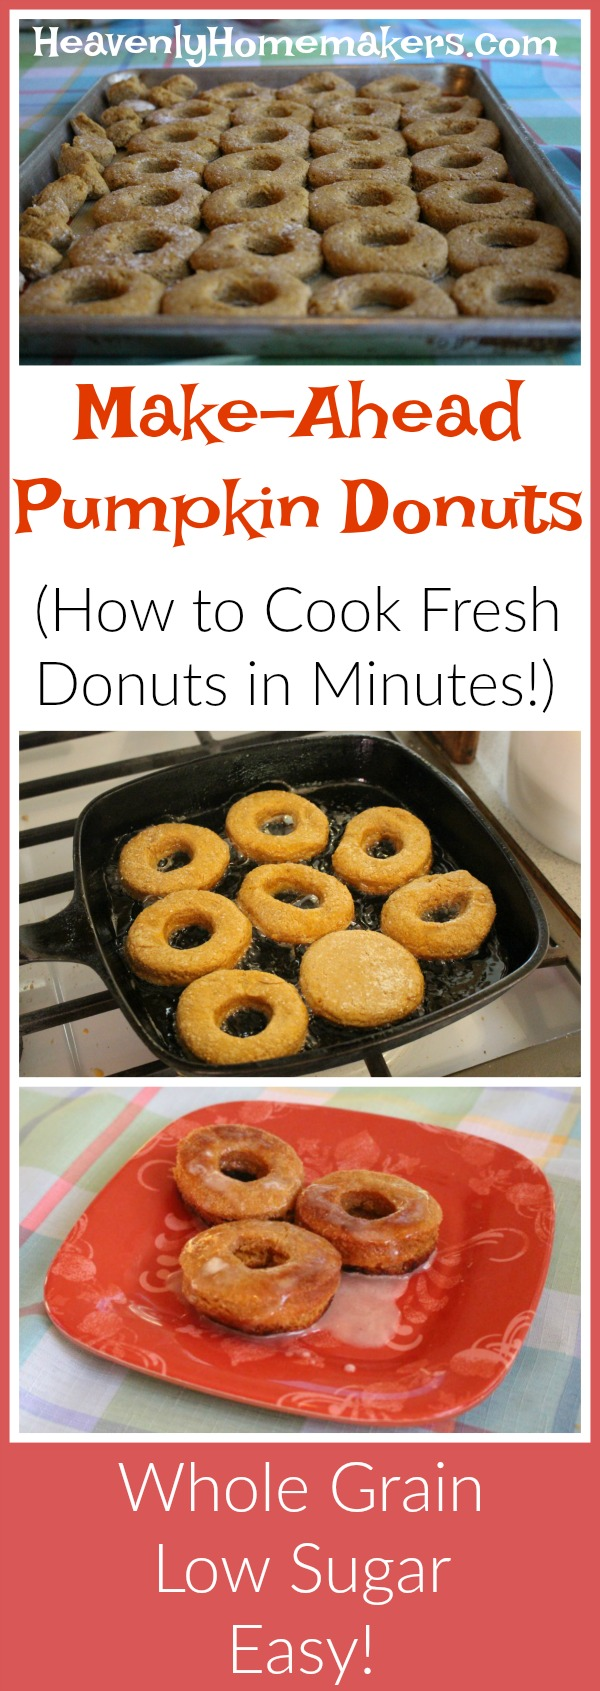 Make-Ahead Pumpkin Donuts (Whole Grain, Low Sugar, Easy!)